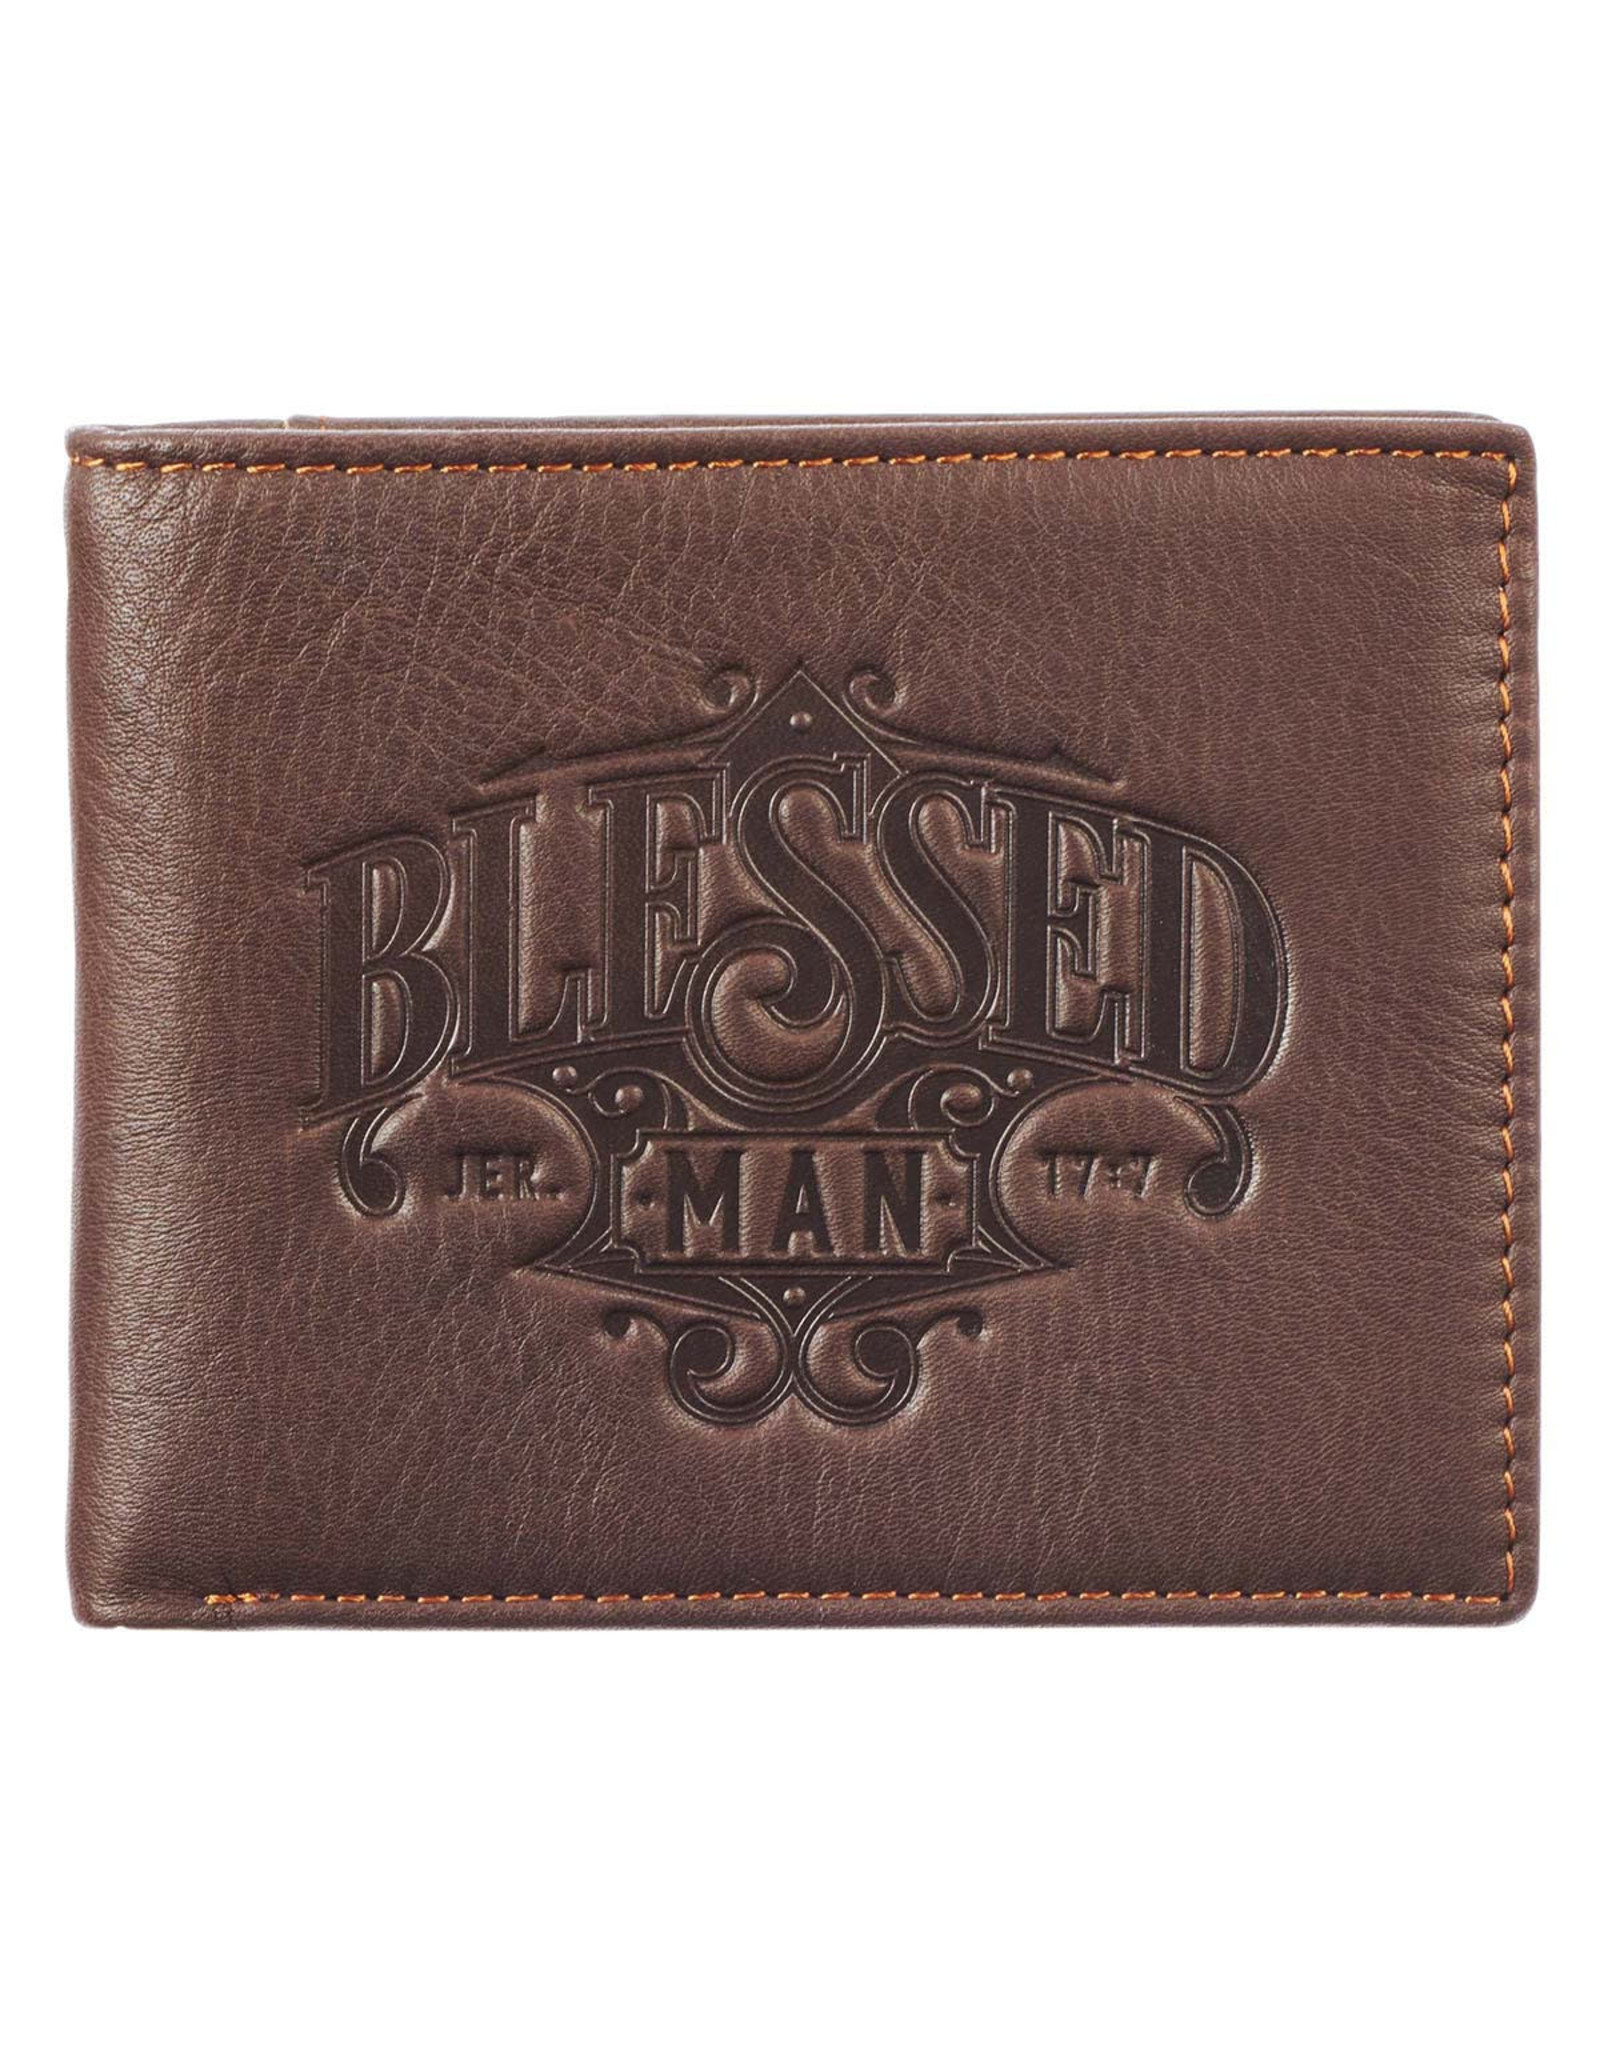 Blessed Man Genuine Leather Wallet - Jeremiah 17:7